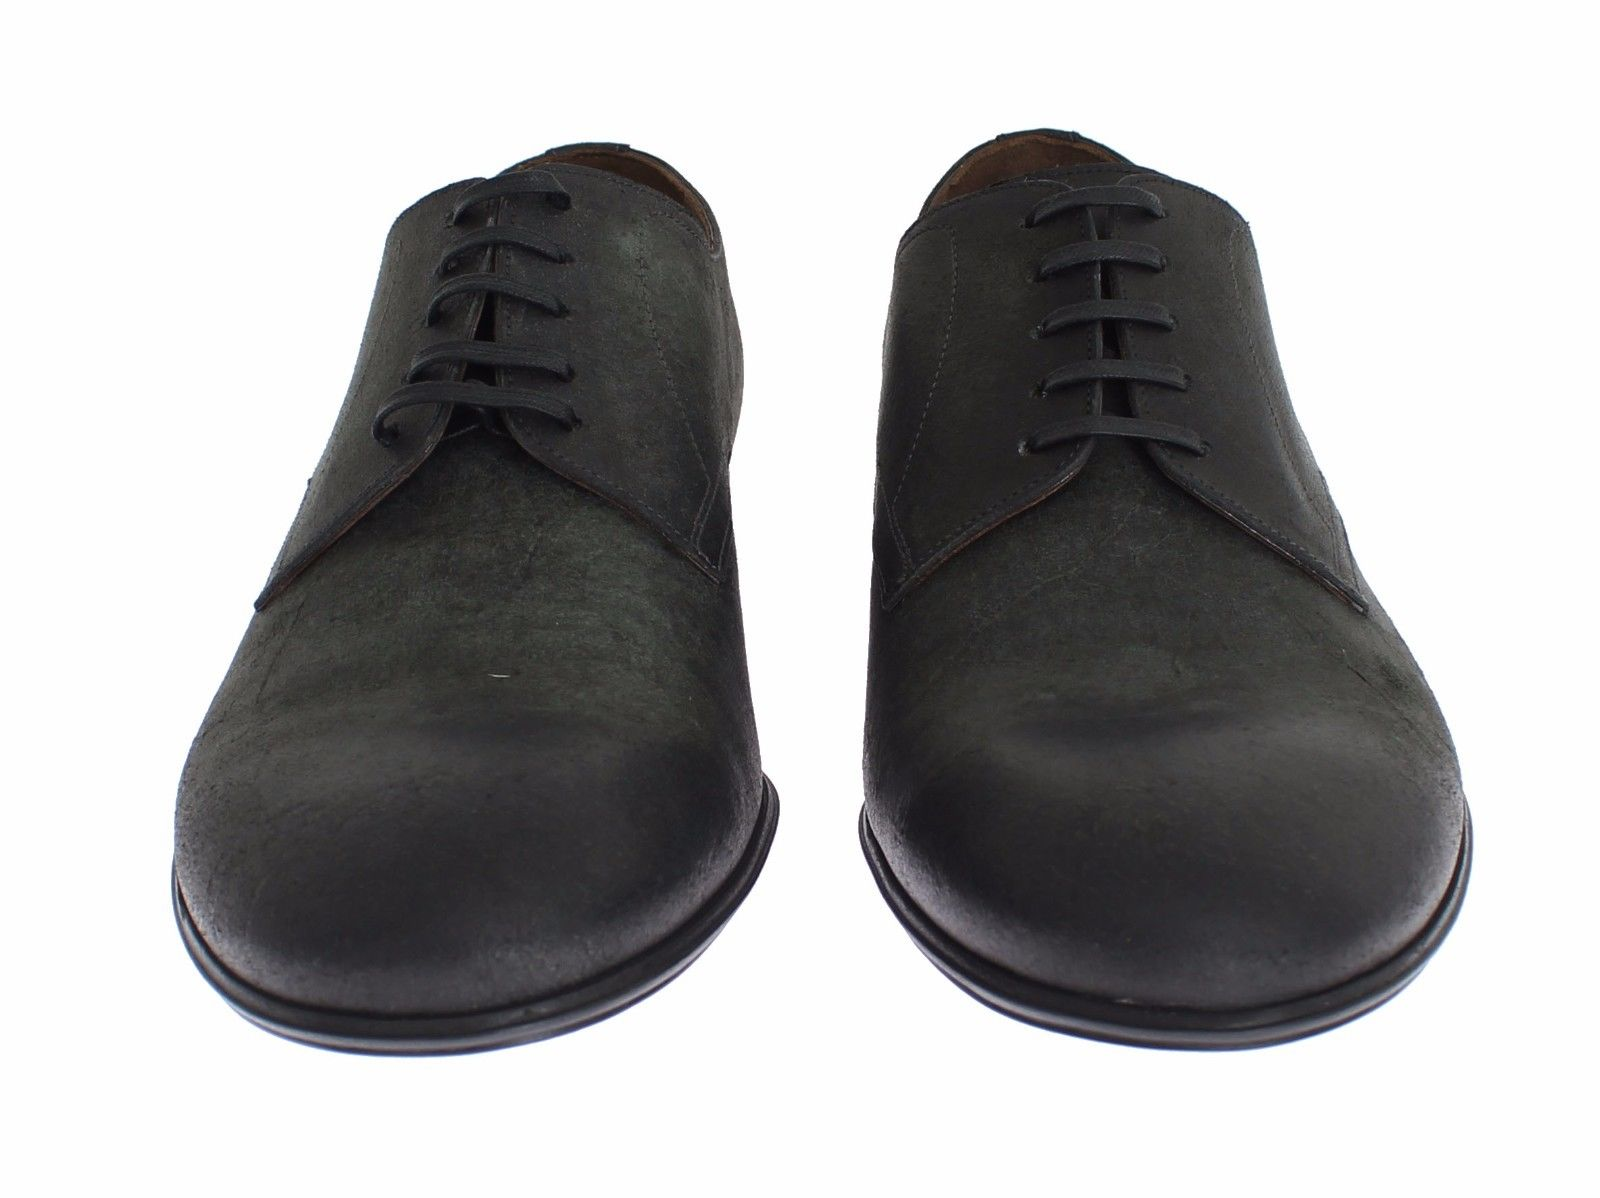 baef4433a16 Mens Green Leather Dress Formal Derby Shoes